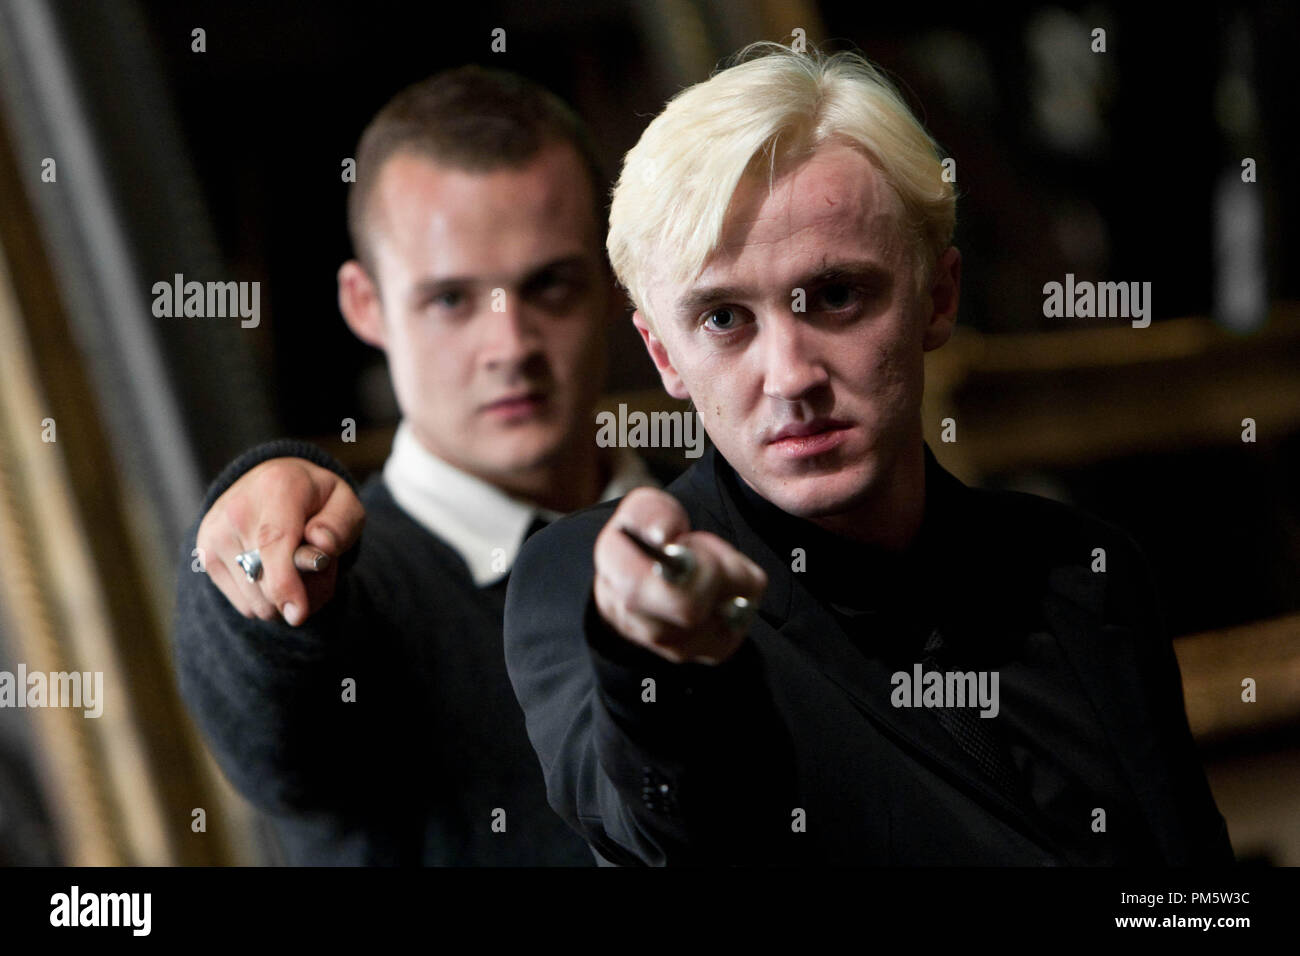 L R Josh Herdman As Gregory Goyle And Tom Felton As Draco Malfoy In Warner Bros Pictures Fantasy Adventure Harry Potter And The Deathly Hallows Part 2 A Warner Bros Pictures Release Herdman (born 26 march 1987) is an english actor and mixed martial artist, best known for playing gregory goyle in the harry potter film series. https www alamy com l r josh herdman as gregory goyle and tom felton as draco malfoy in warner bros pictures fantasy adventure harry potter and the deathly hallows part 2 a warner bros pictures release image218946992 html